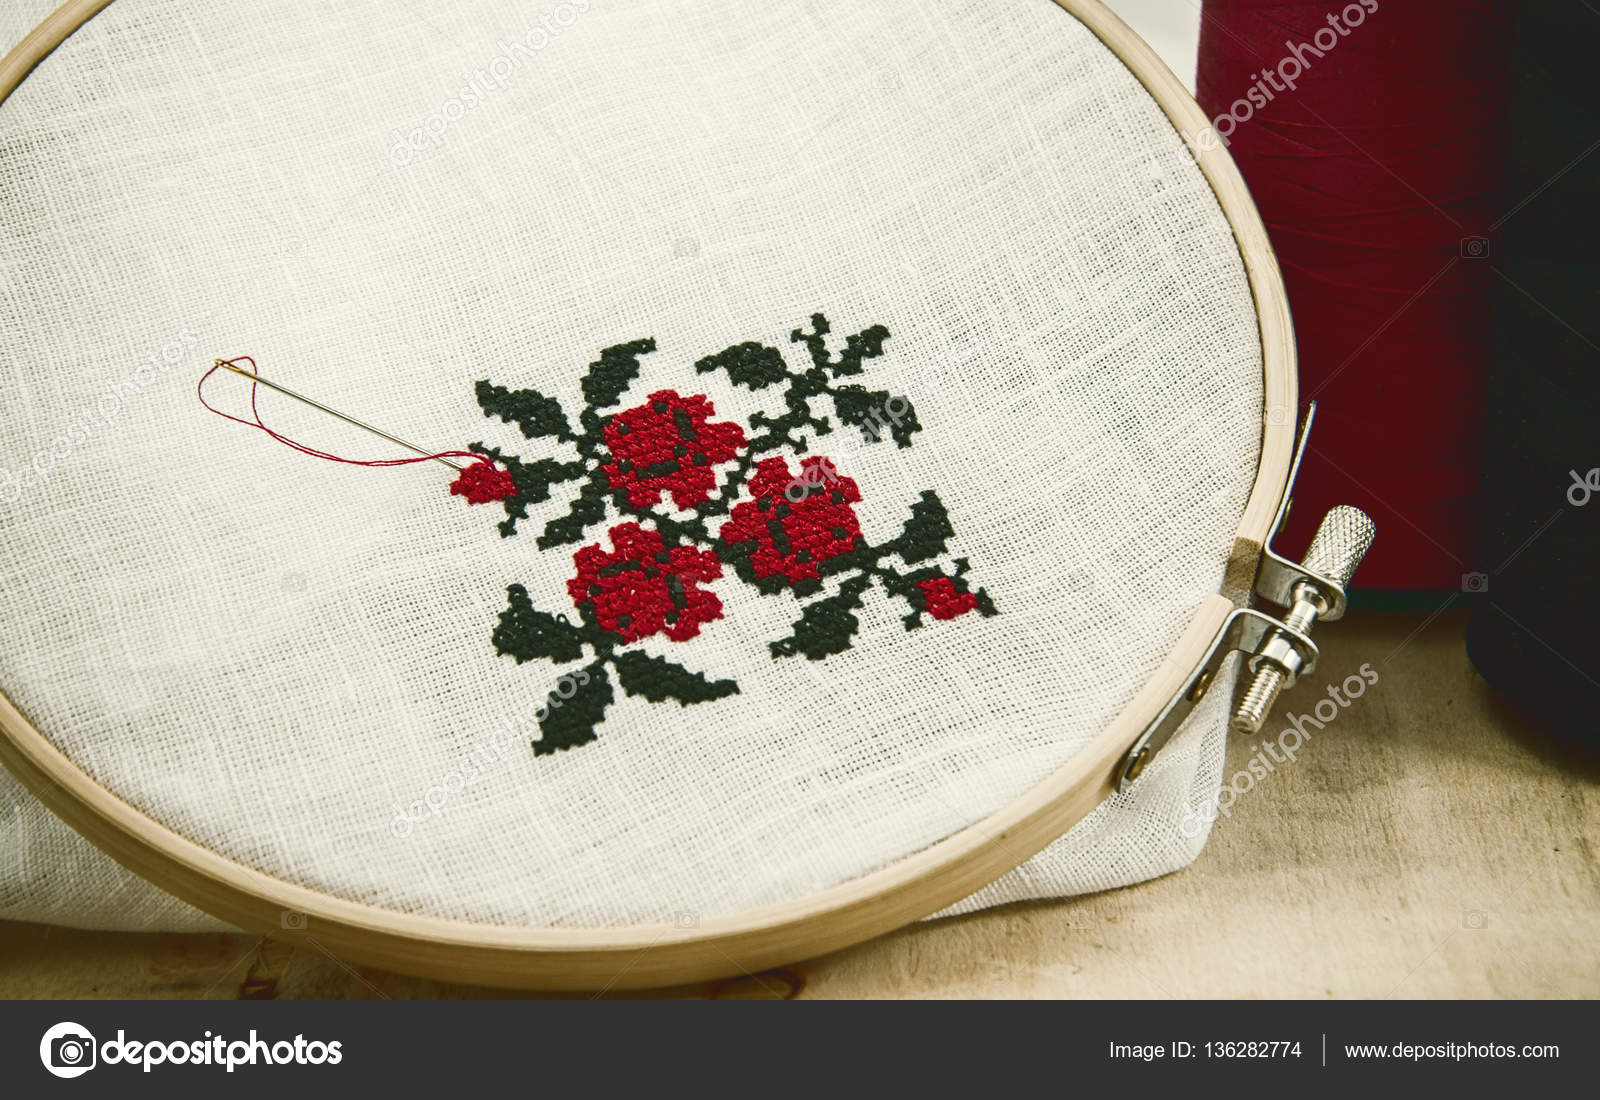 Hand embroidery cross stitch flower ornament on a white fabric ...